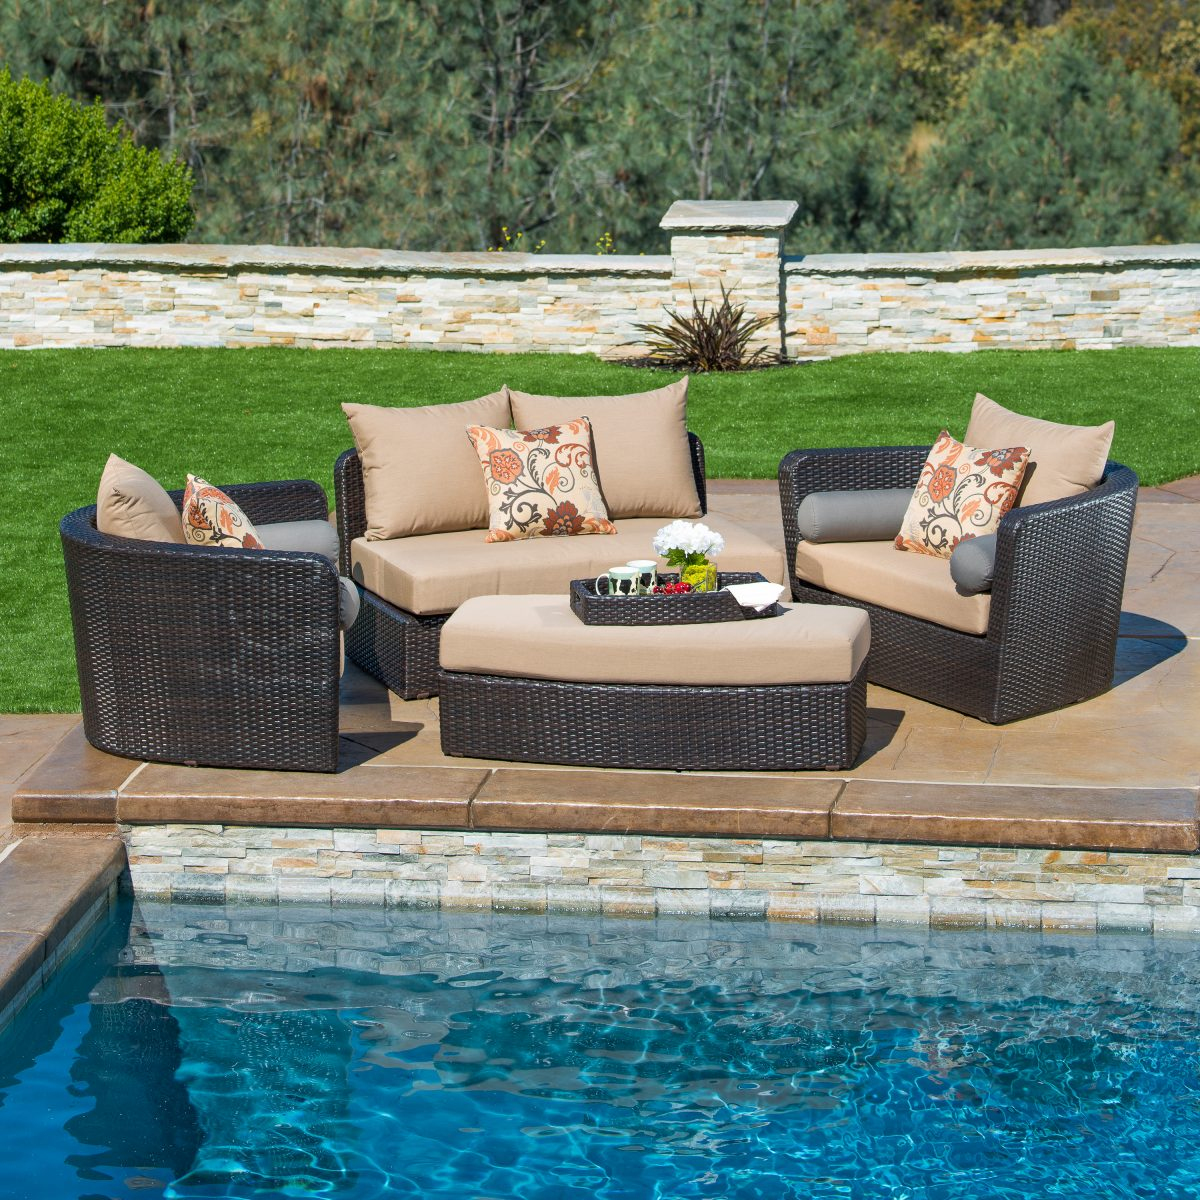 poolside furniture ideas - modular furniture